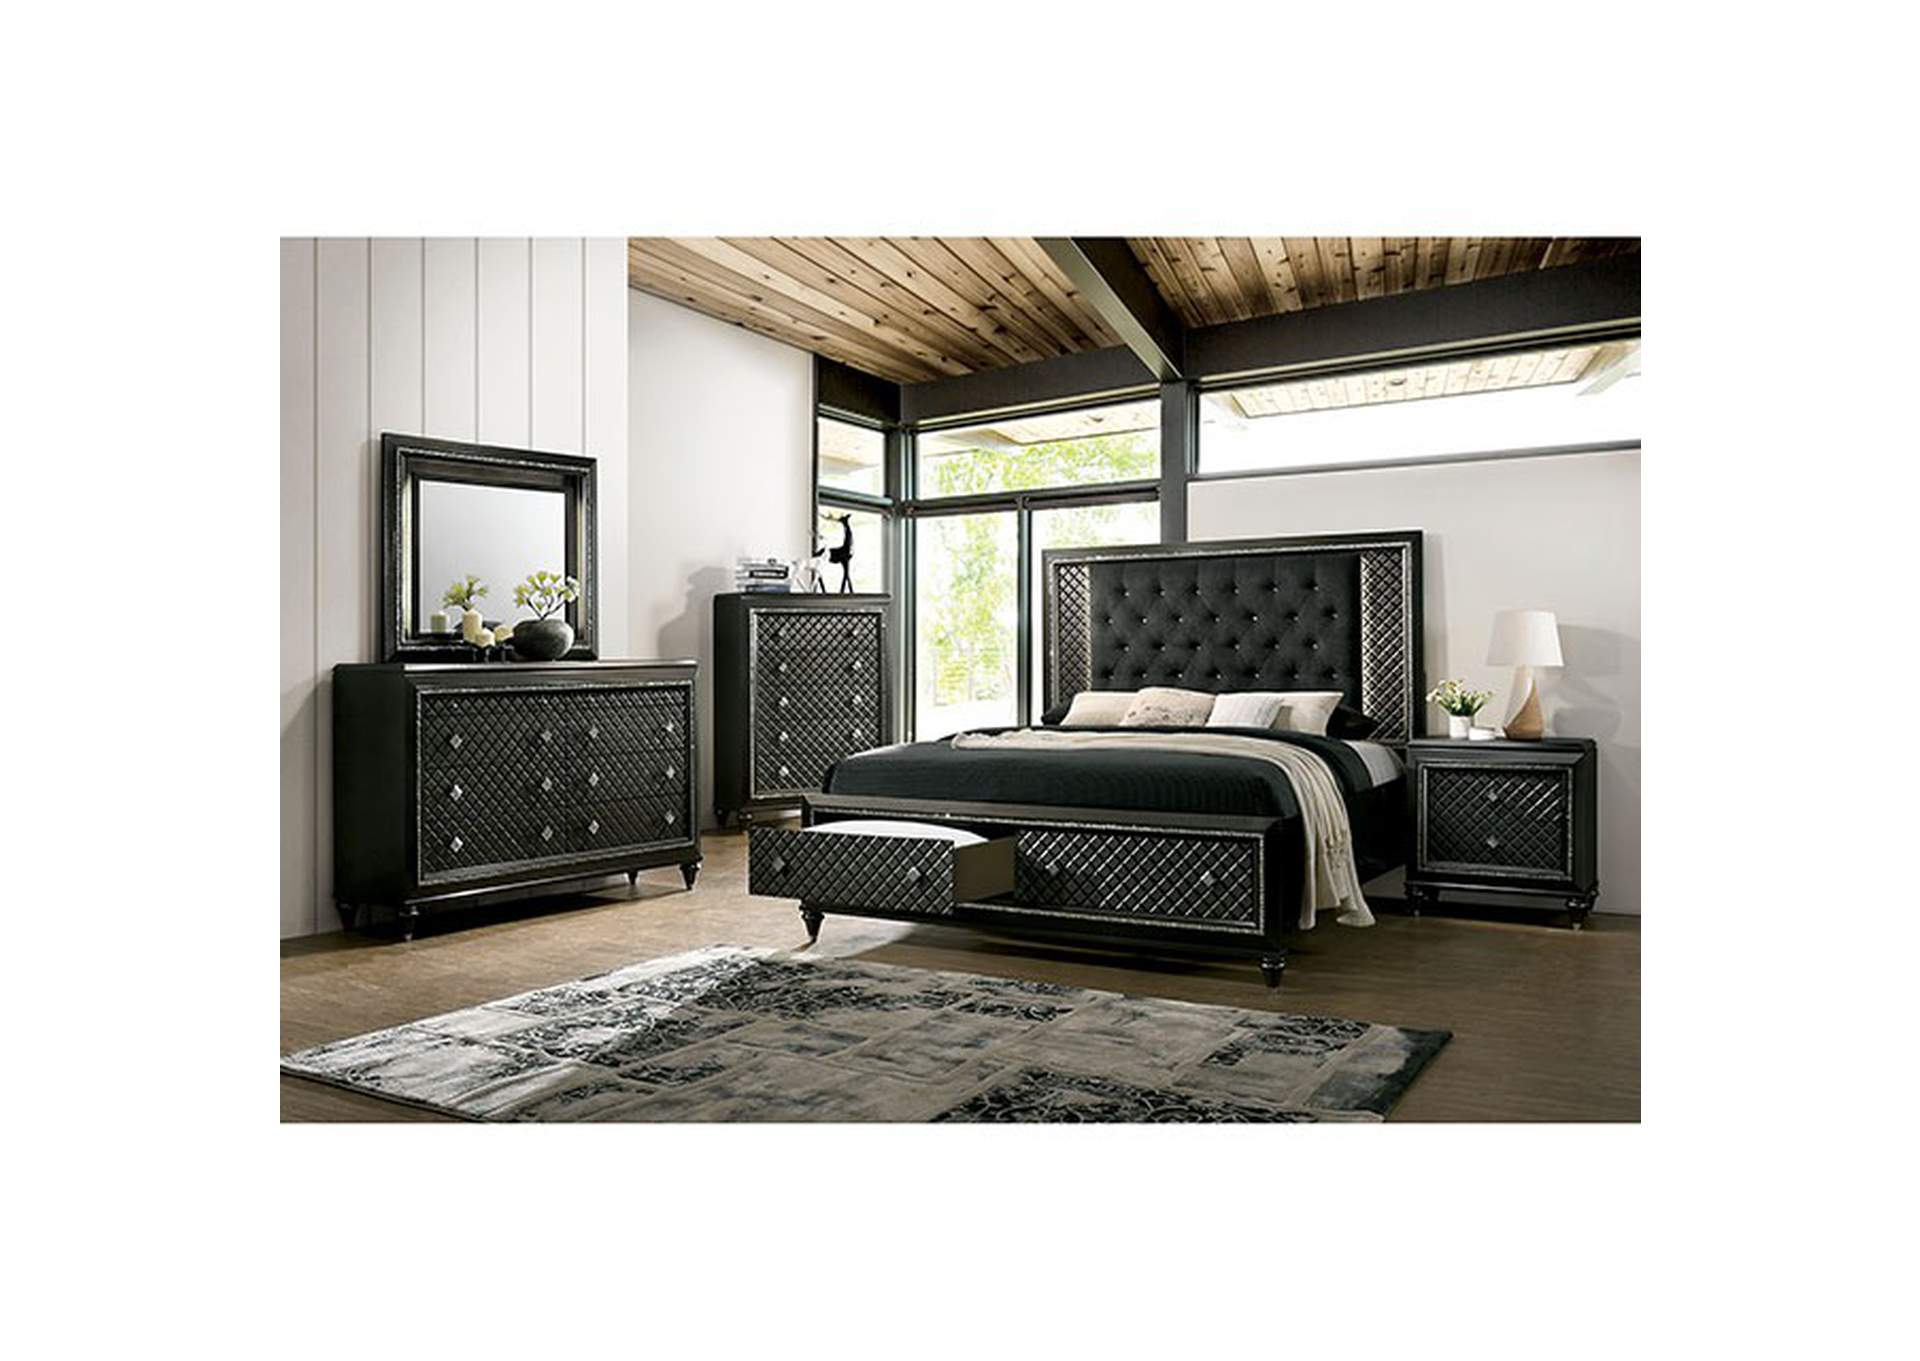 Demetria Black/Metallic Gray Eastern King Storage Bed w/LED Trim,Furniture of America